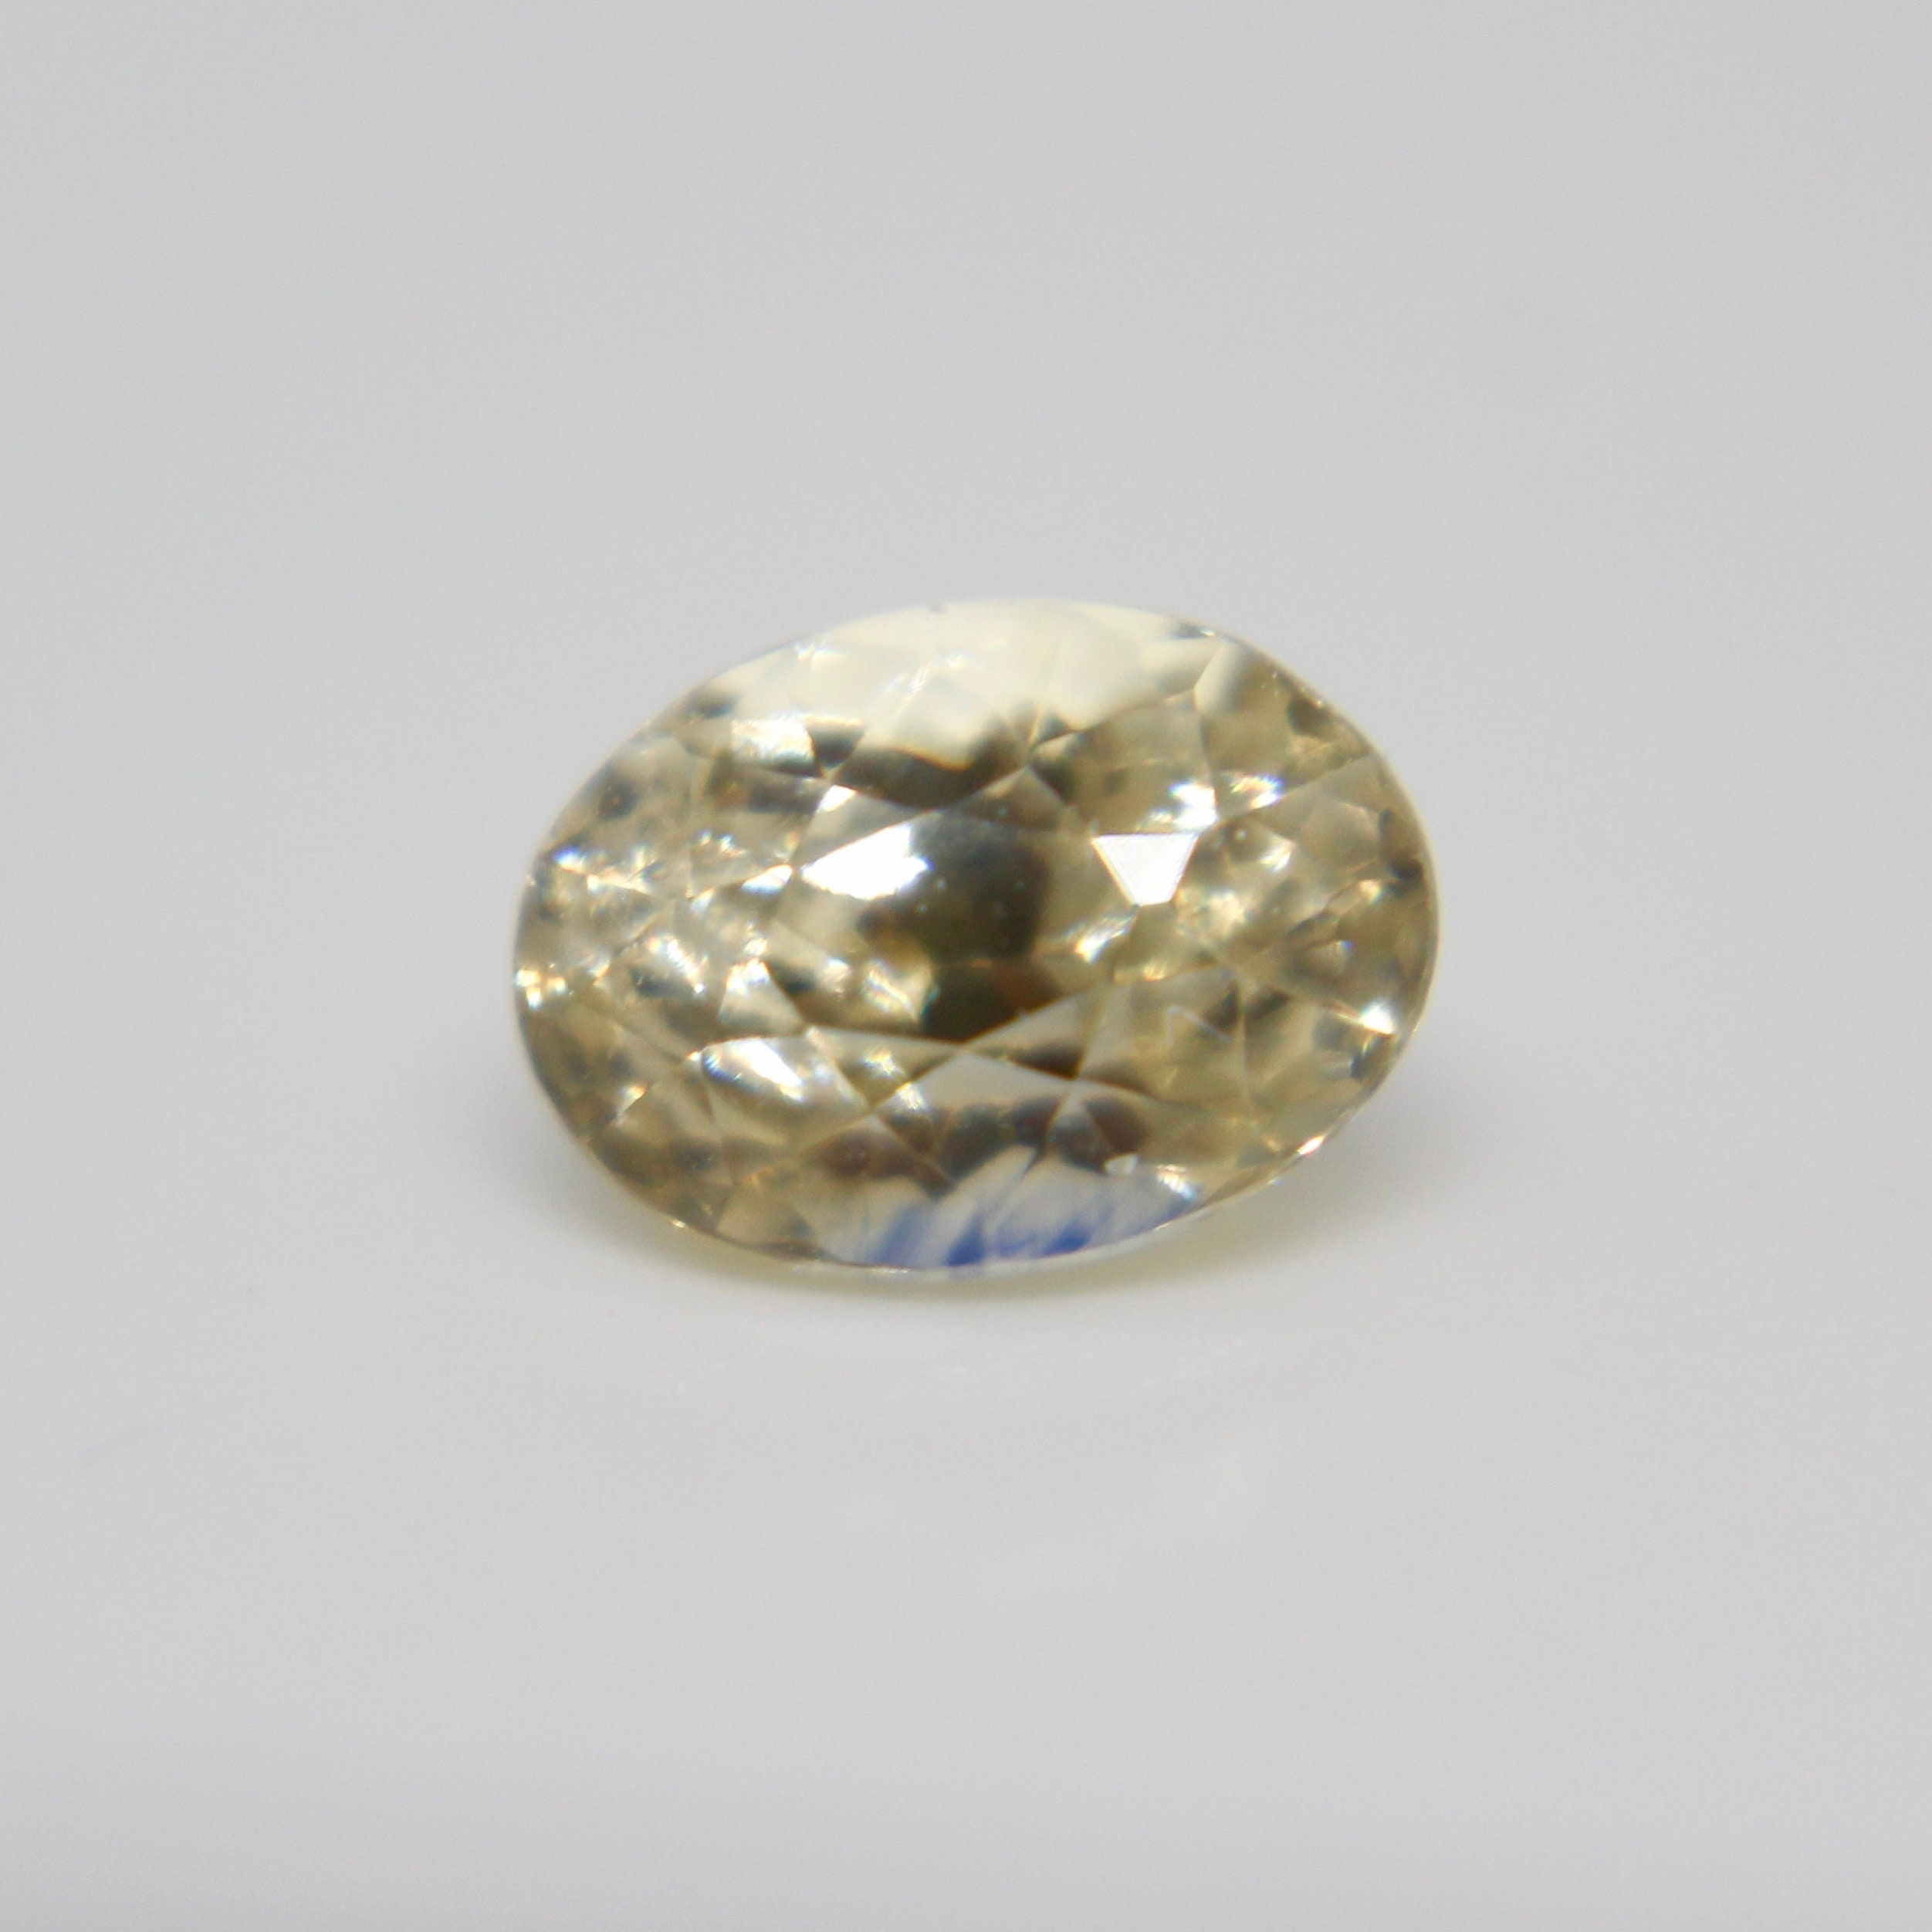 pear natural yellow mm untreated listing unheated fullxfull champagne loose il cut gemstone sapphire